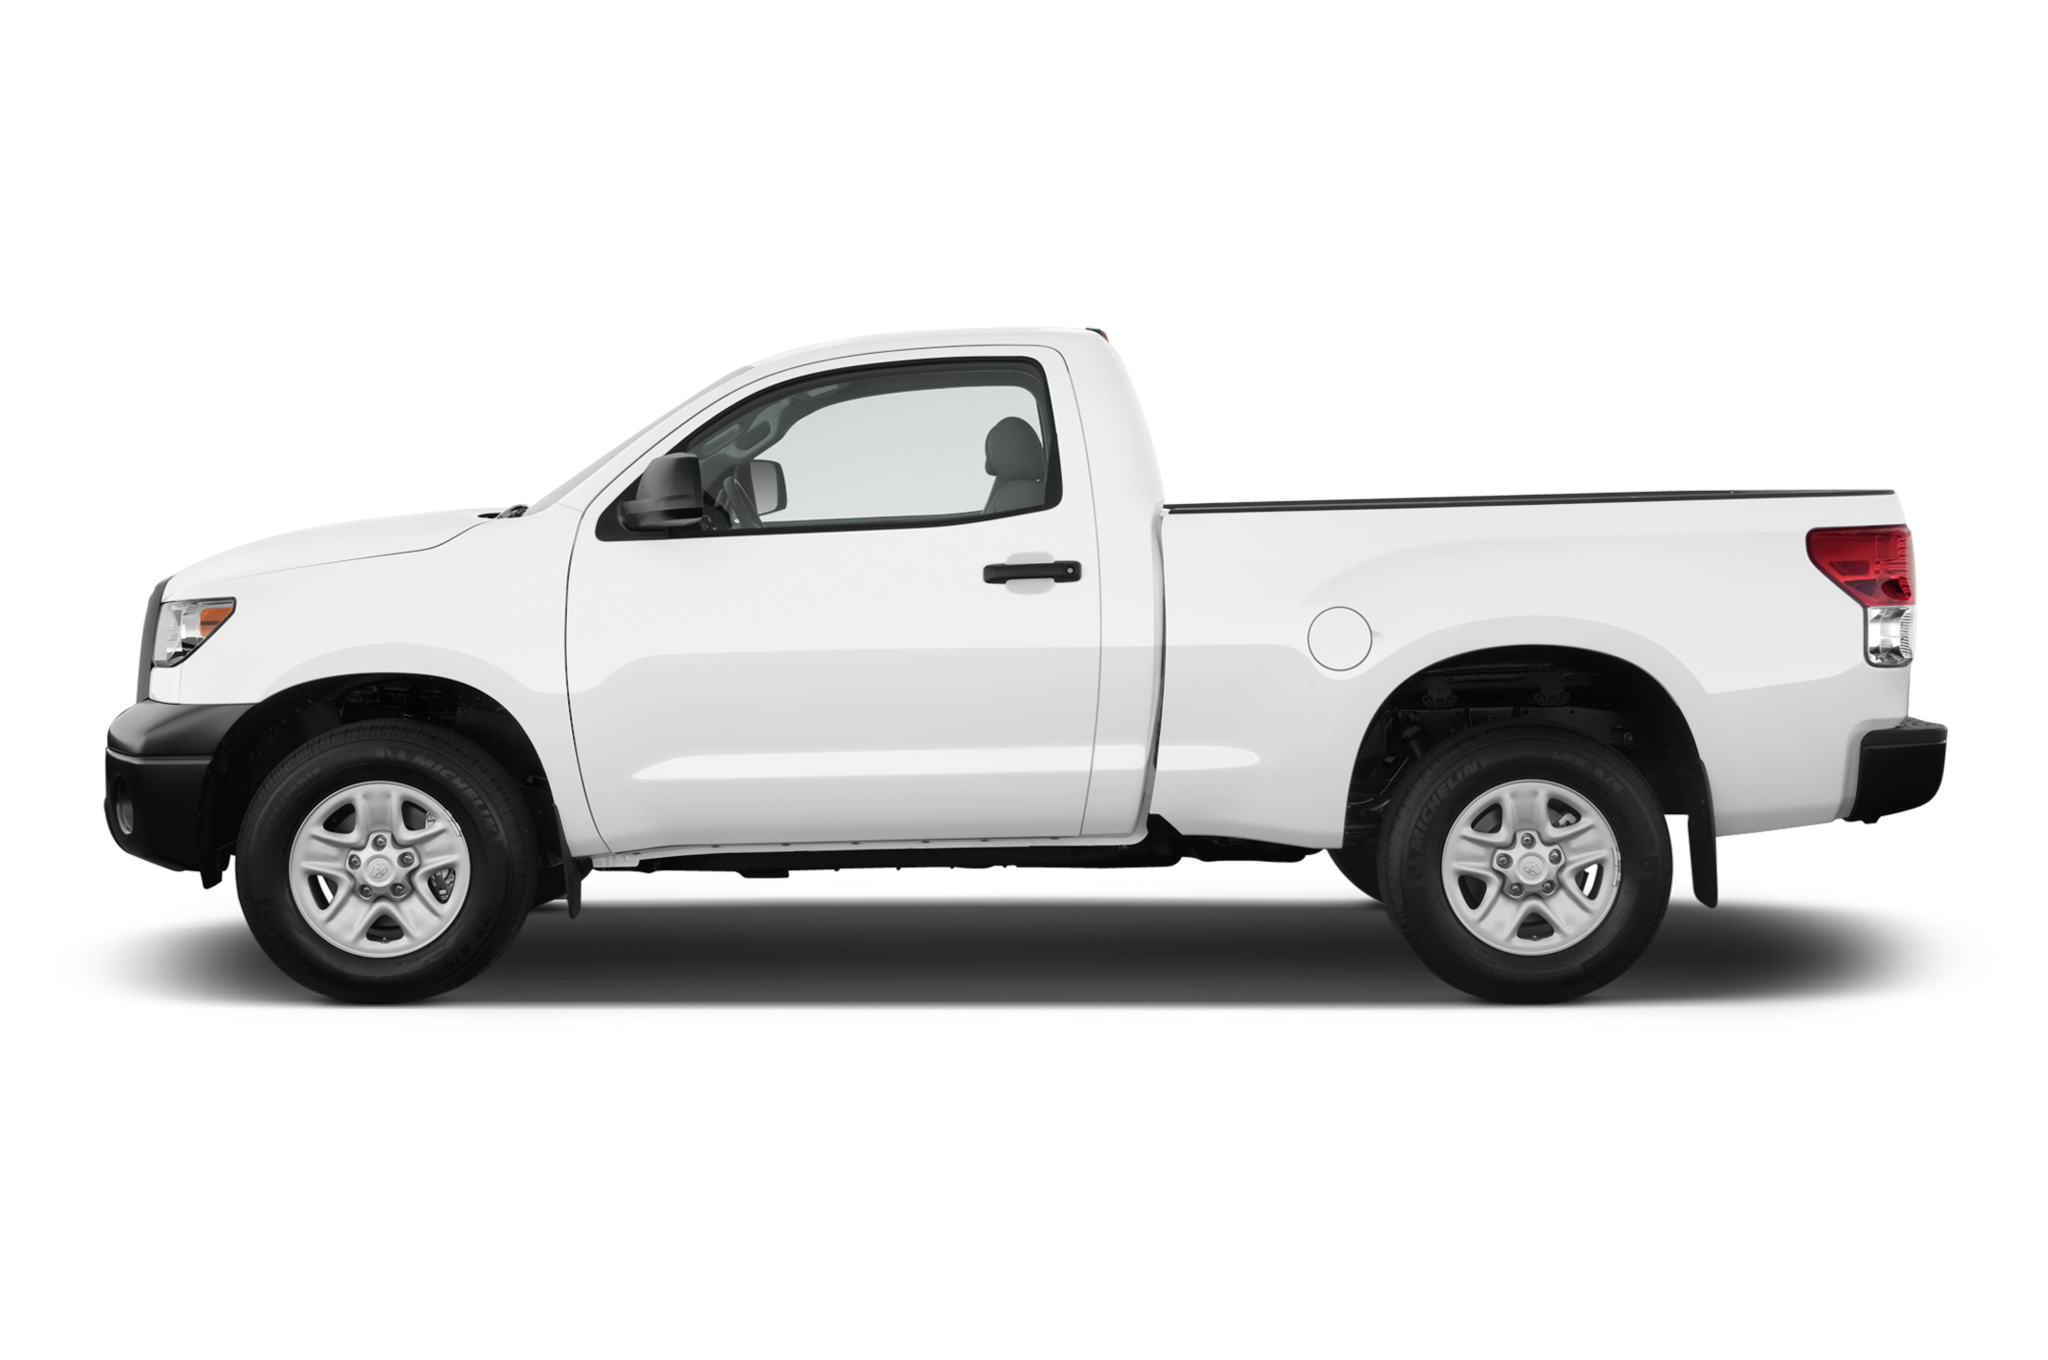 toyota will pull space shuttle endeavor with 2012 toyota tundra. Black Bedroom Furniture Sets. Home Design Ideas